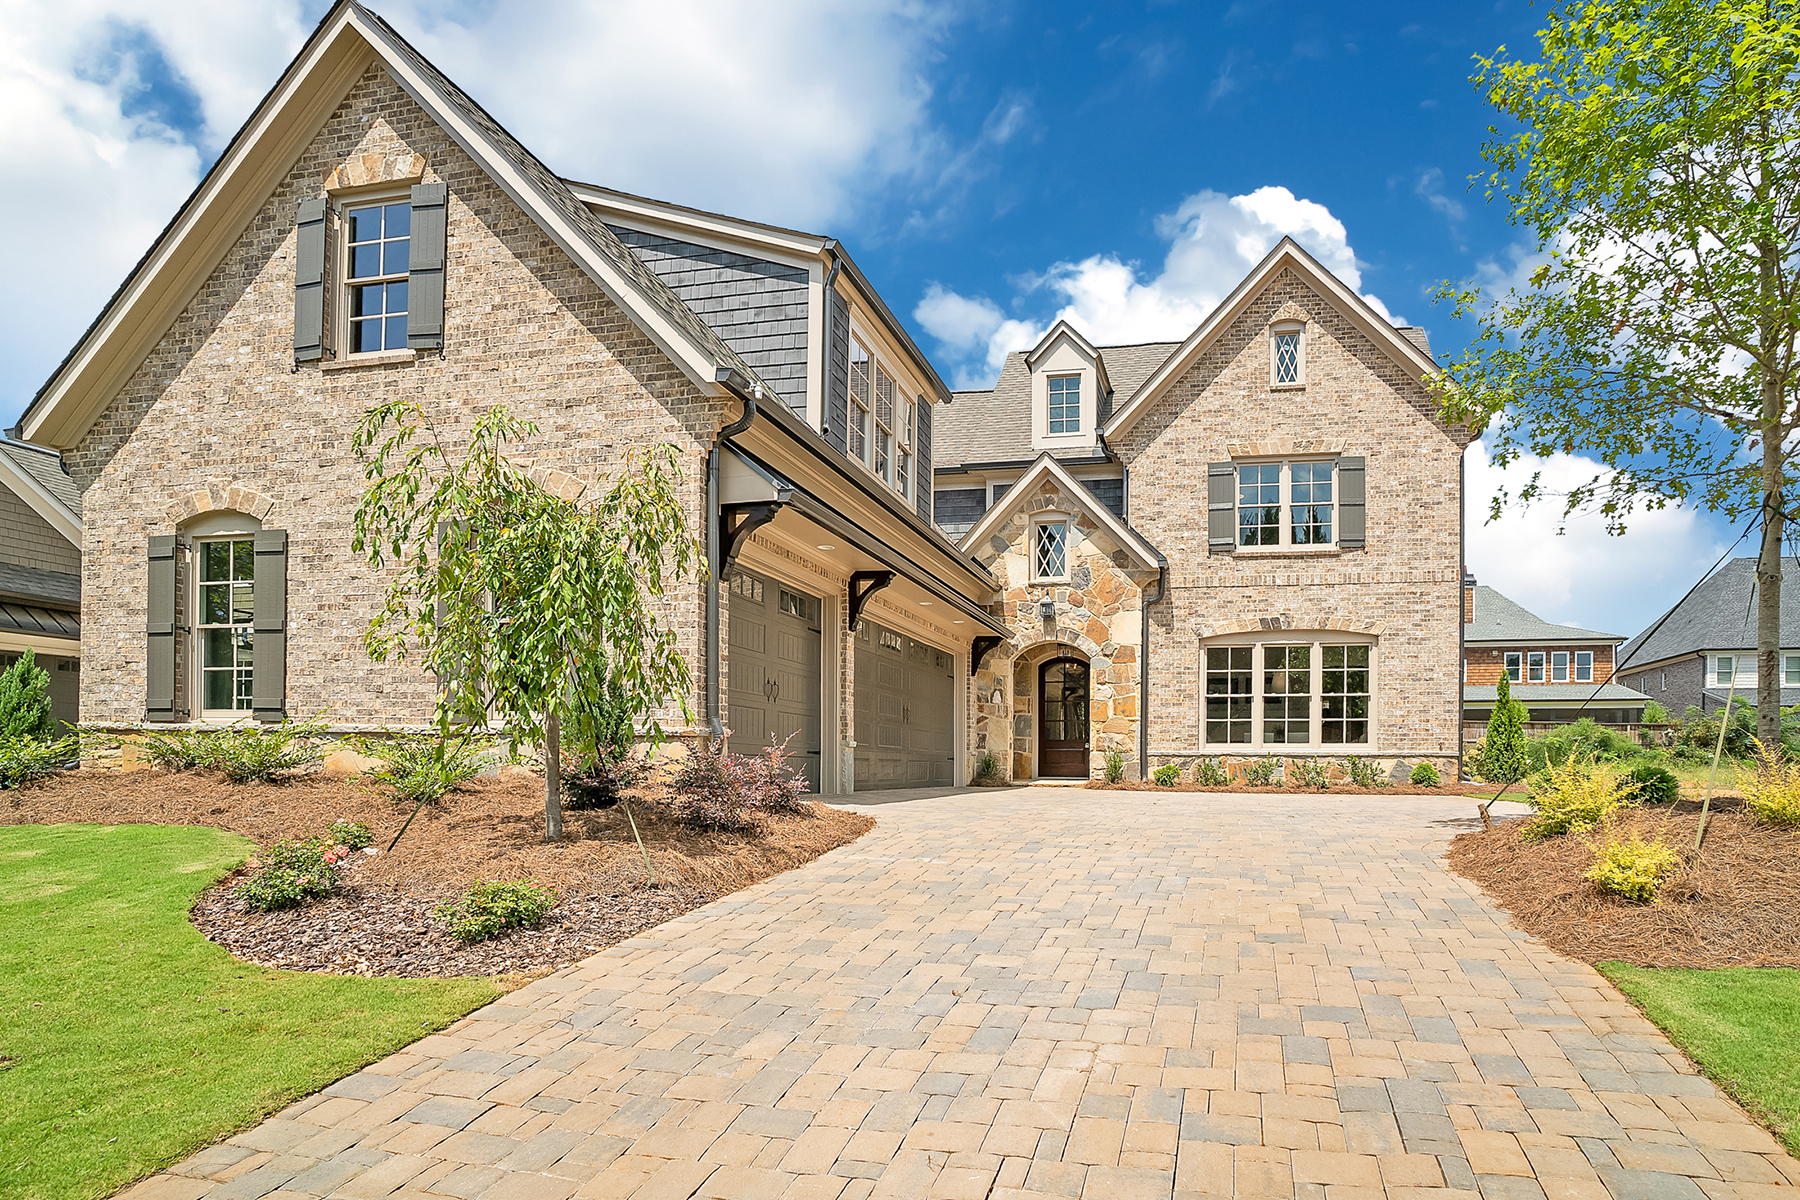 獨棟家庭住宅 為 出售 在 New Luxury Home In The Heart Of East Cobb 4588 Oakside Point Marietta, 喬治亞州 30067 美國